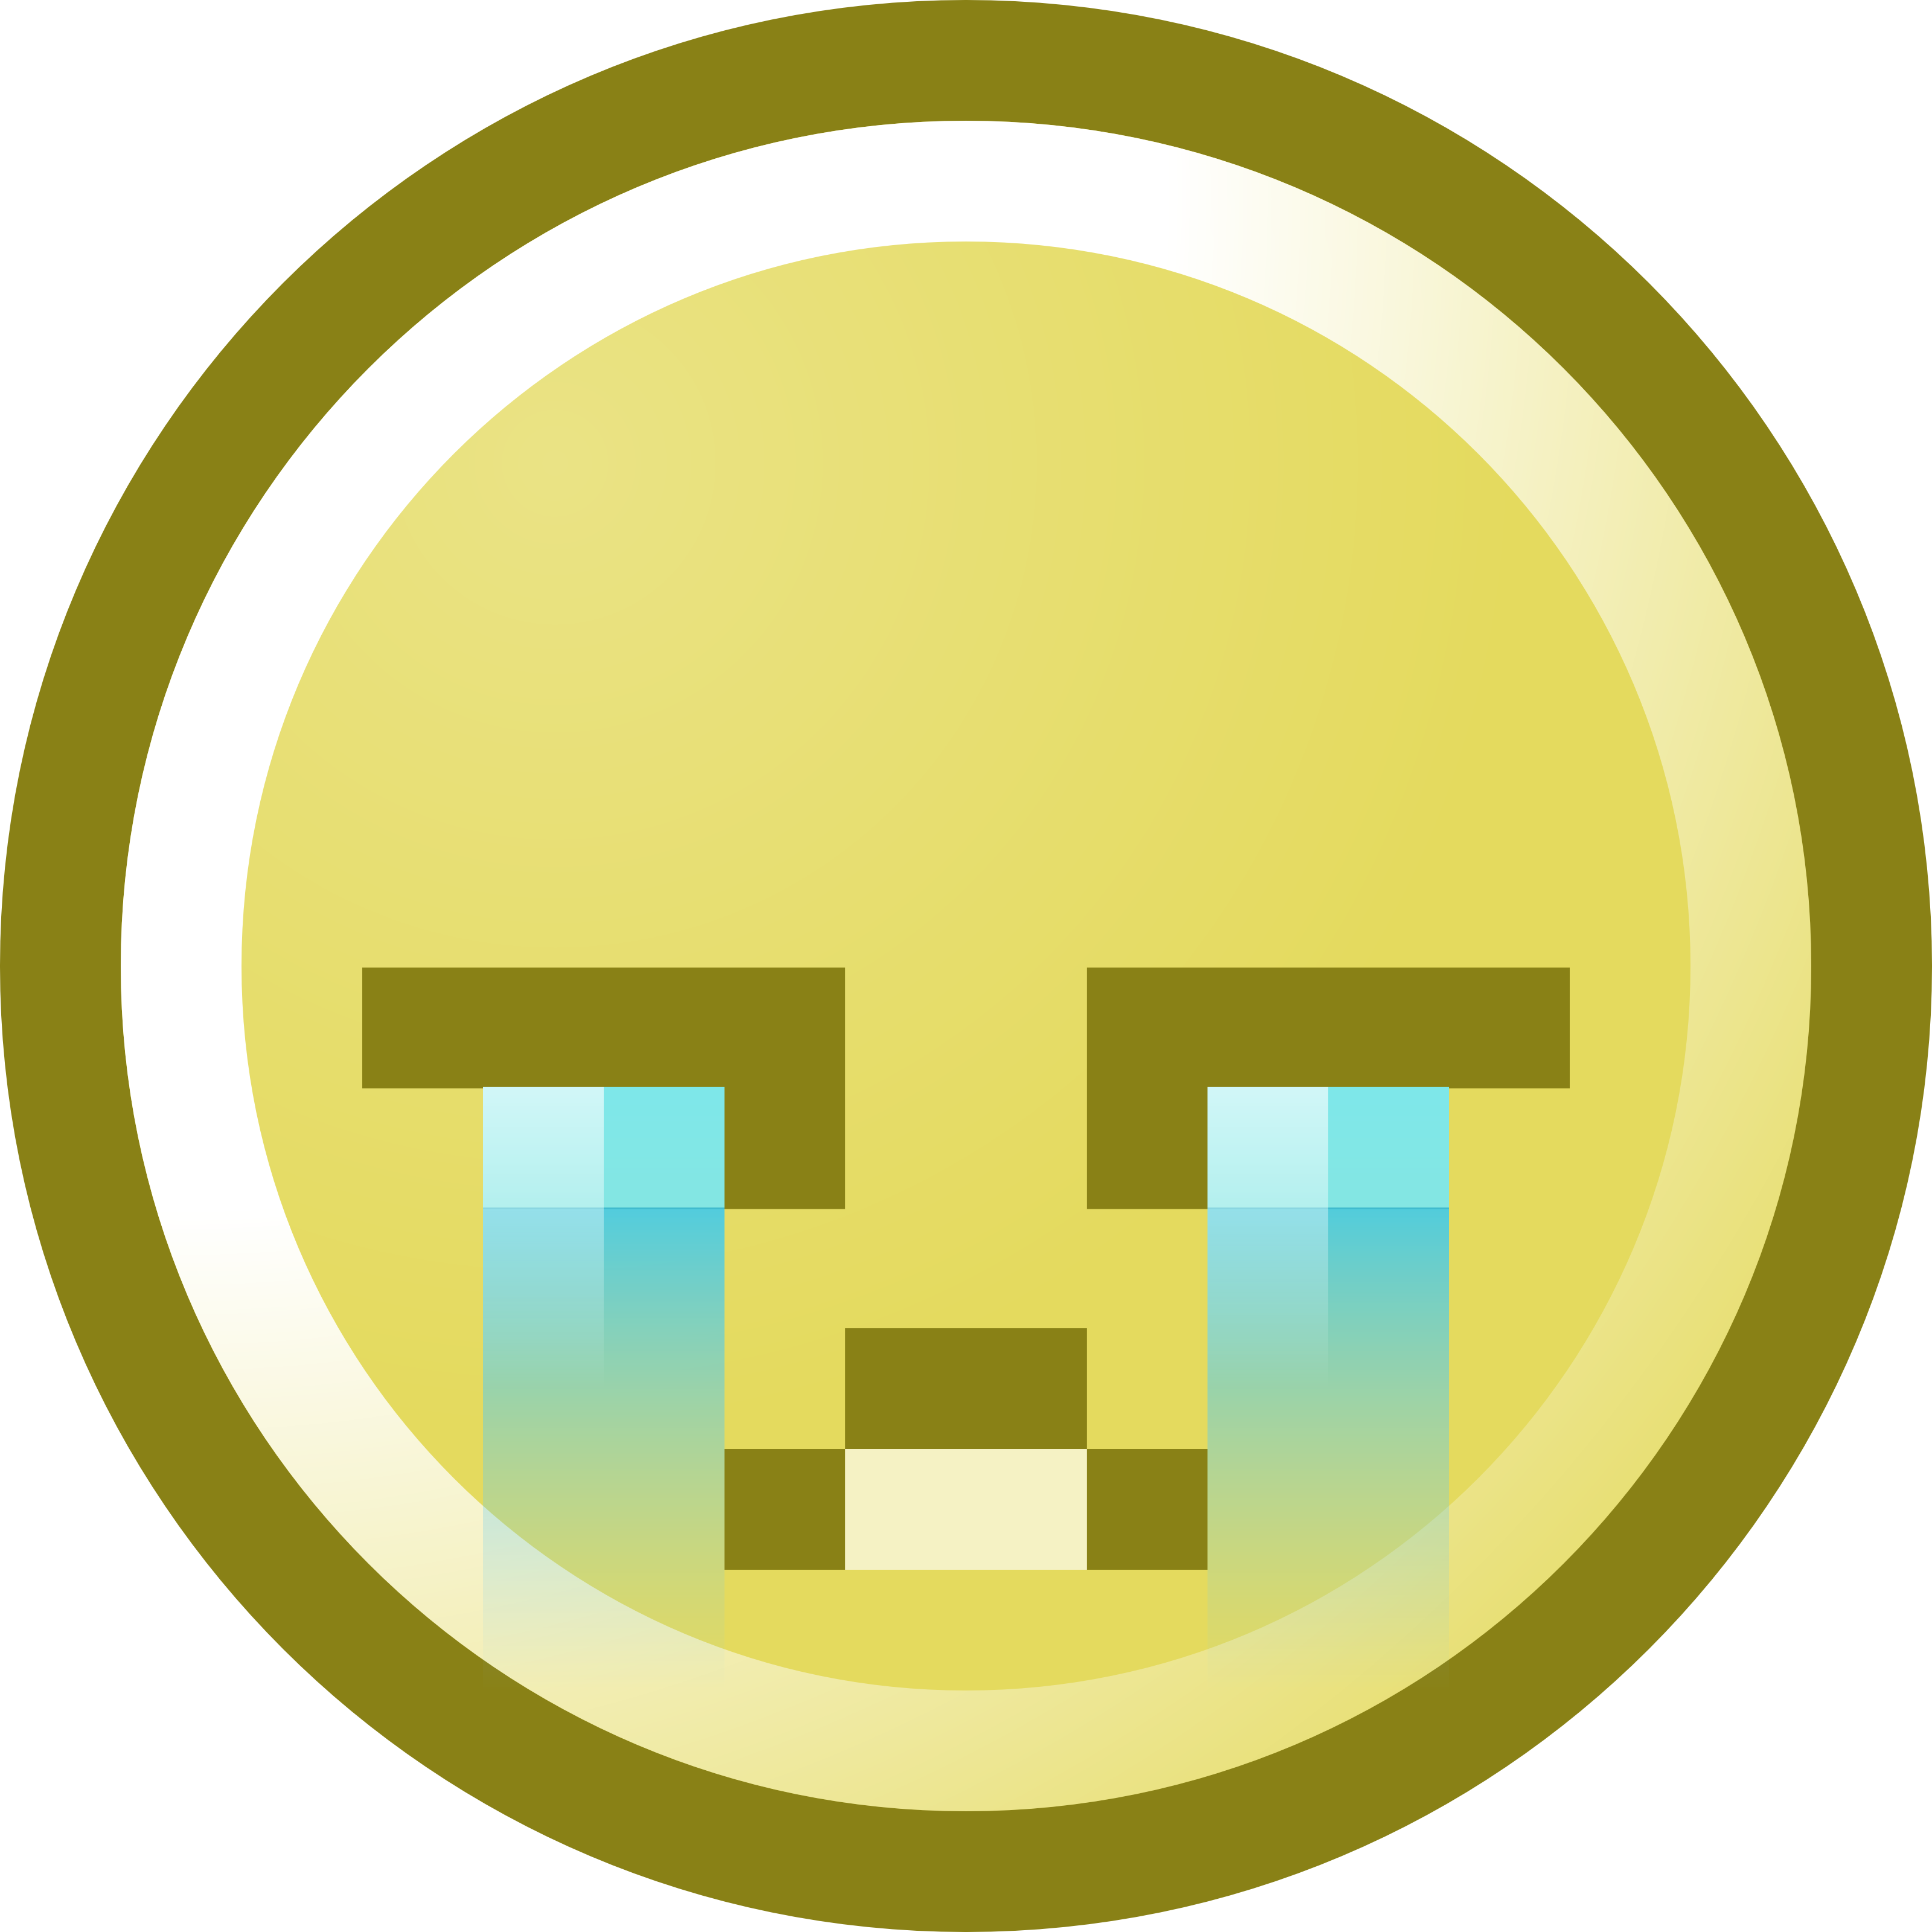 3200x3200 Crying Smiley Face Clipart